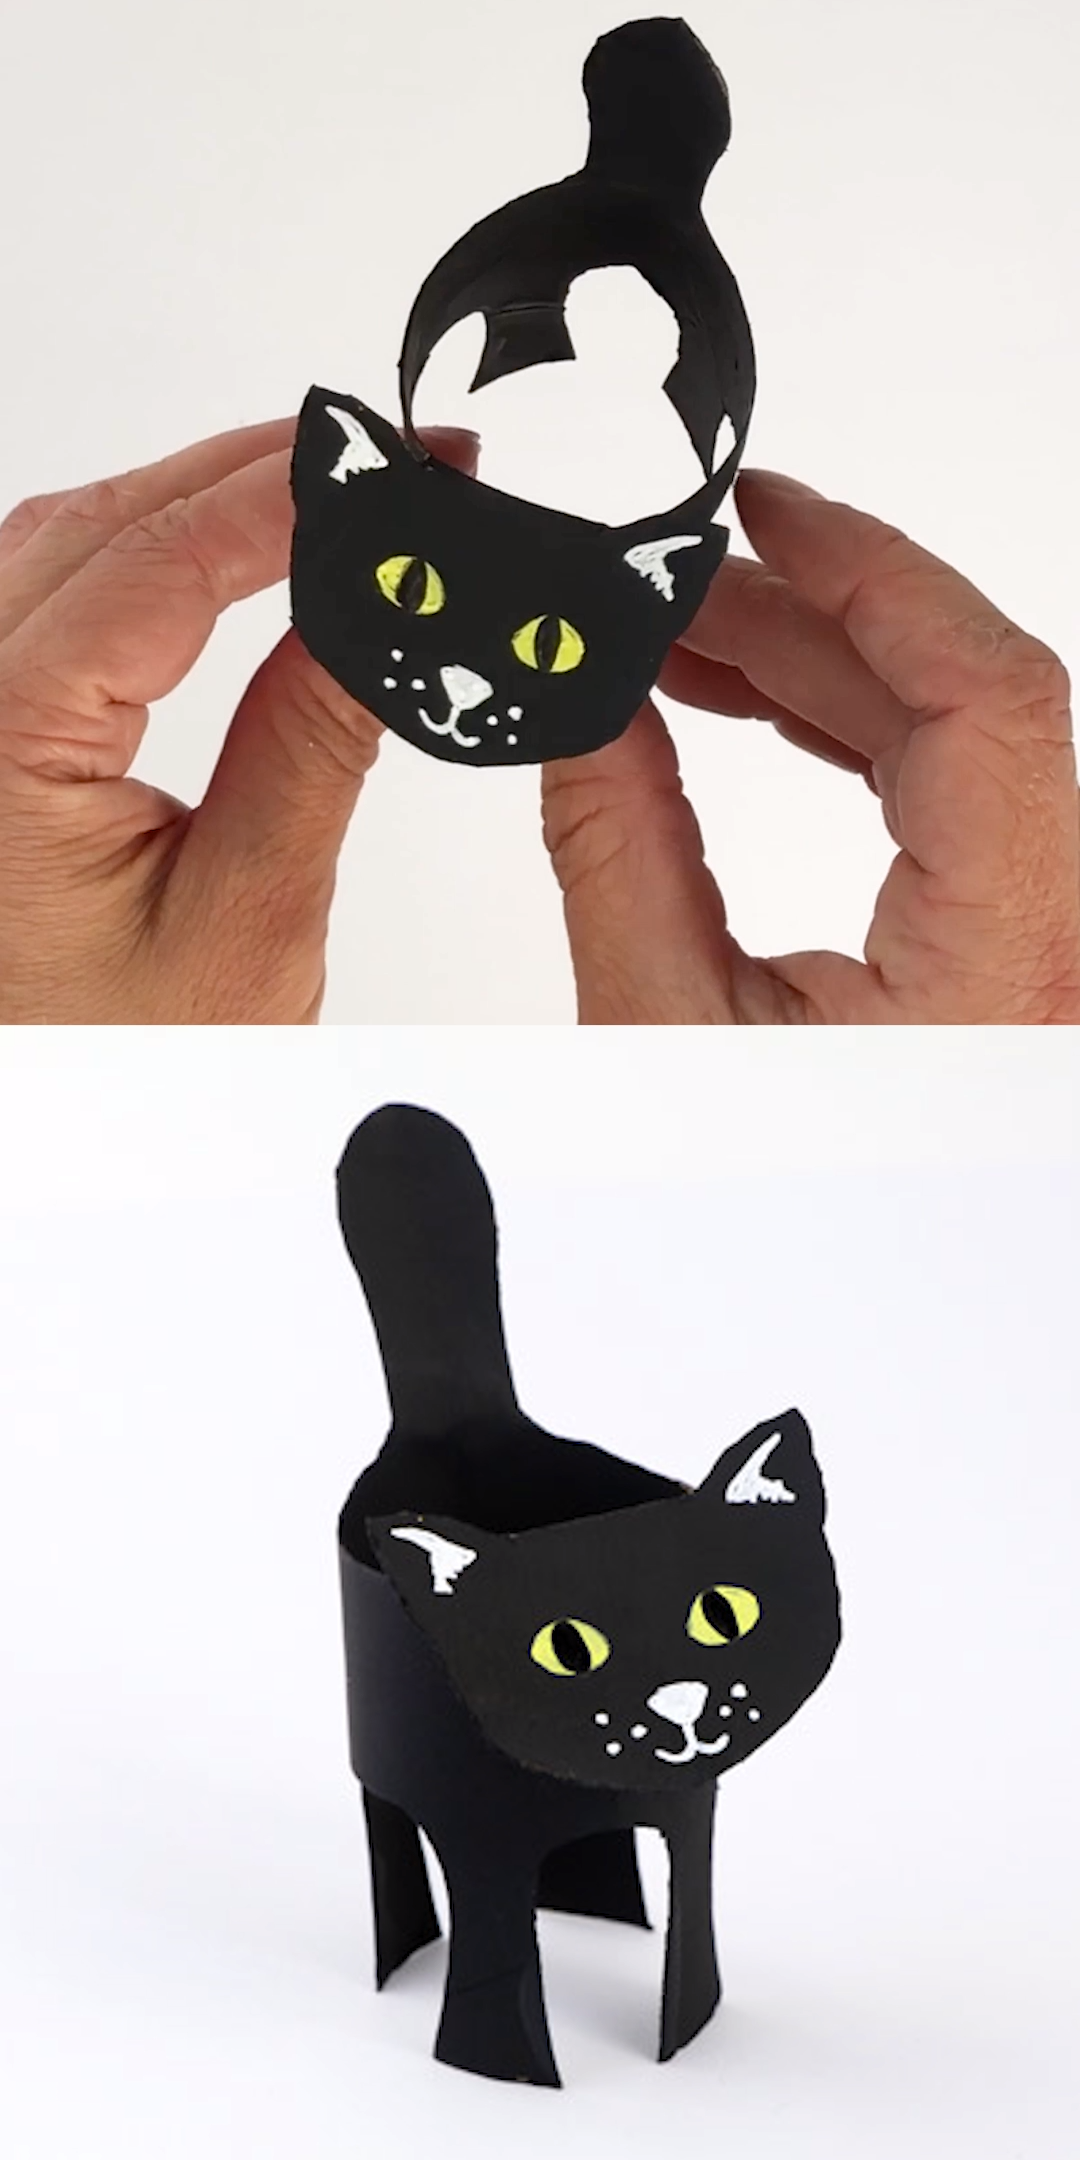 Easy paper roll black cat craft for kids. Recycle an ordinary cardboard tube into an adorable black cat for Halloween! Printable template available  #blackcat #paperroll #halloween #kidscraft #kidsactivities #halloweencrafts #recycledcrafts #cardboardtubes